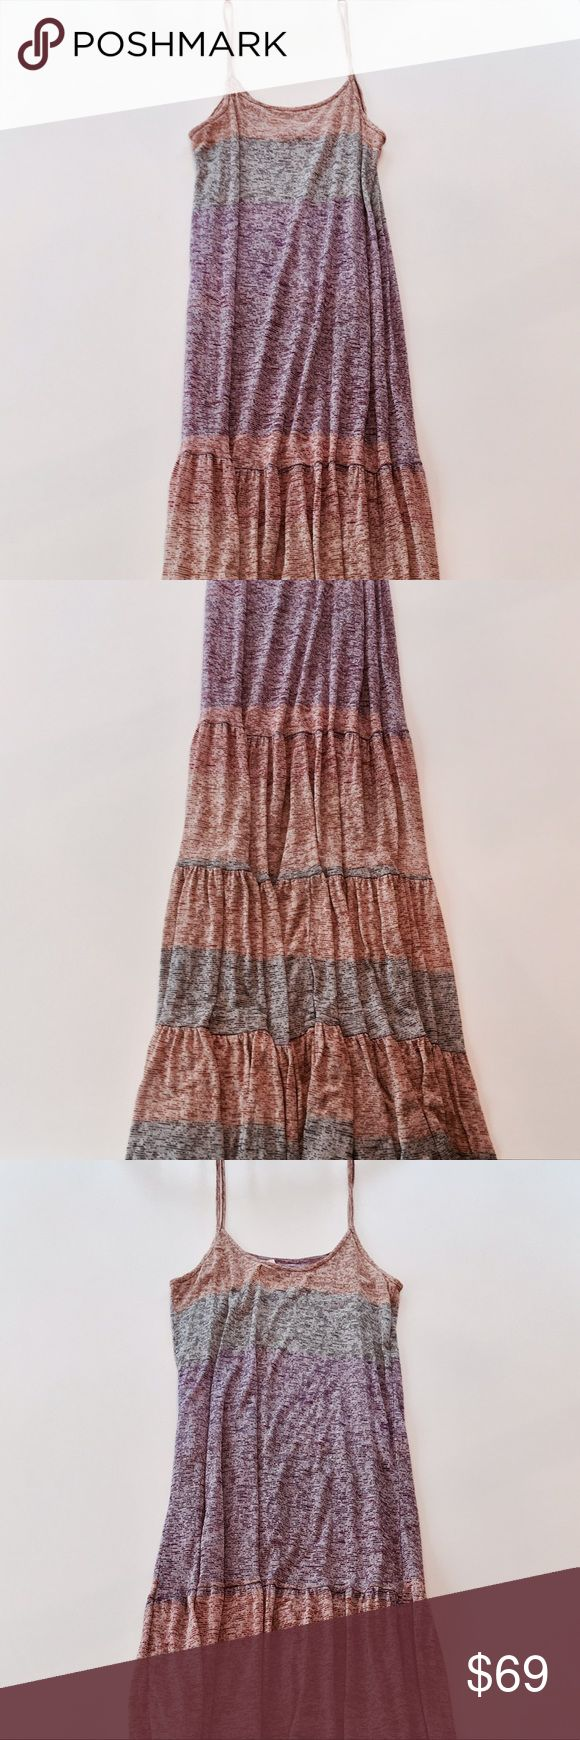 "Free People FP Beach Lotus Maxi Dress Style: Semi-sheer marled fabric, striped pattern, tiered ruffled hem, spaghetti straps. Measurements: ≈59"" length; ≈8"" strap to strap. Fabric: 60% Rayon, 40% Polyester.  Condition: Pre-owned with slight wear; otherwise great condition. Care: Machine wash cold. Free People Dresses Maxi"